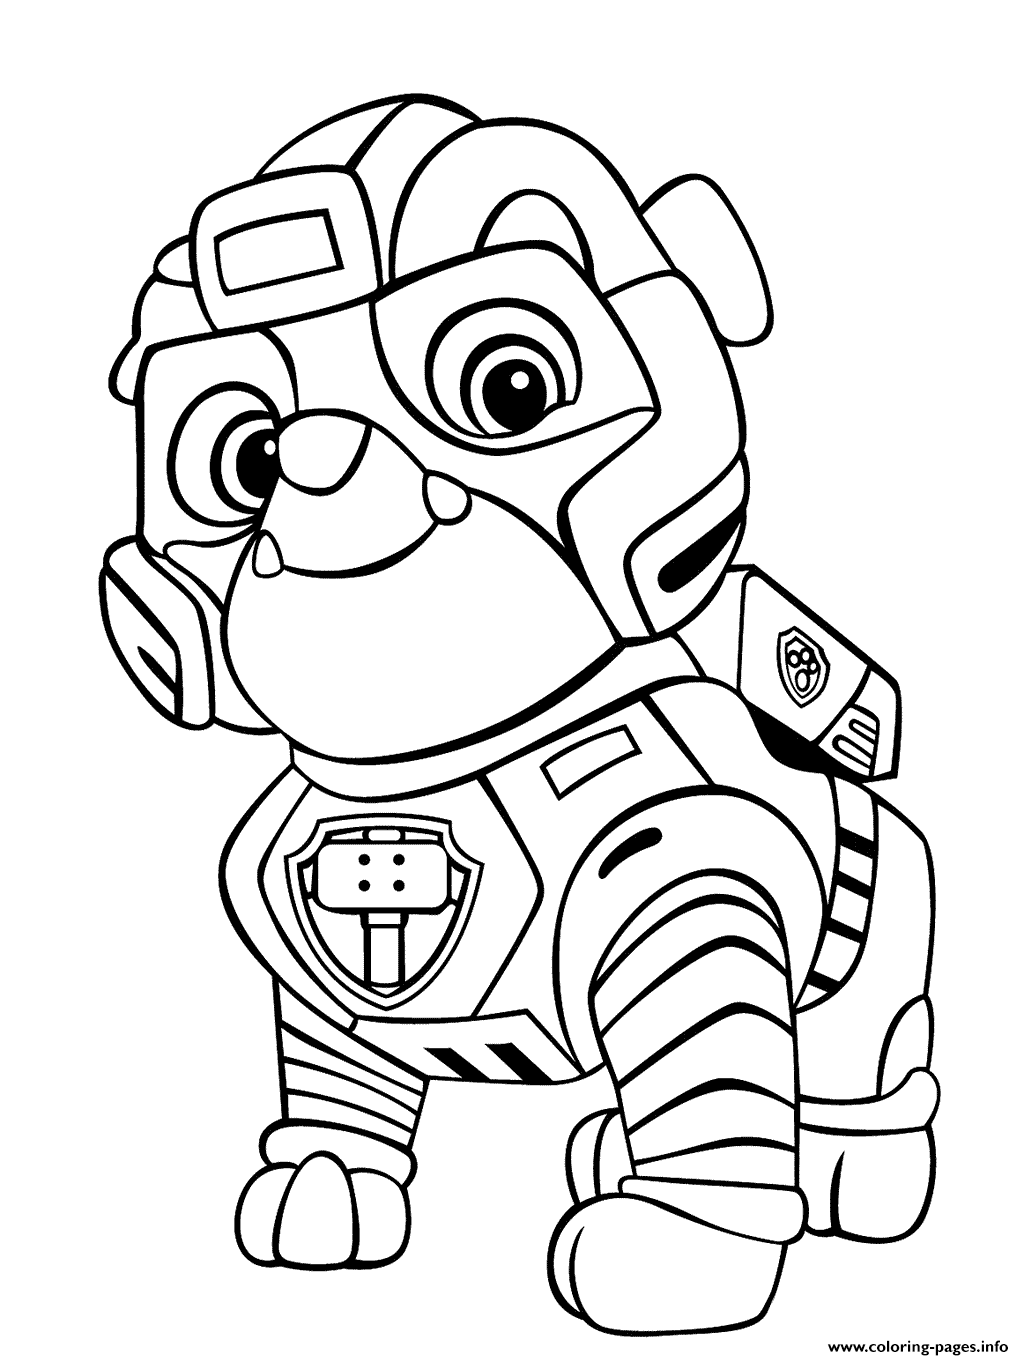 Free Download Mighty Pups Coloring Pages Paw Patrol Coloring Pages Paw Patrol Coloring Toy Story Coloring Pages